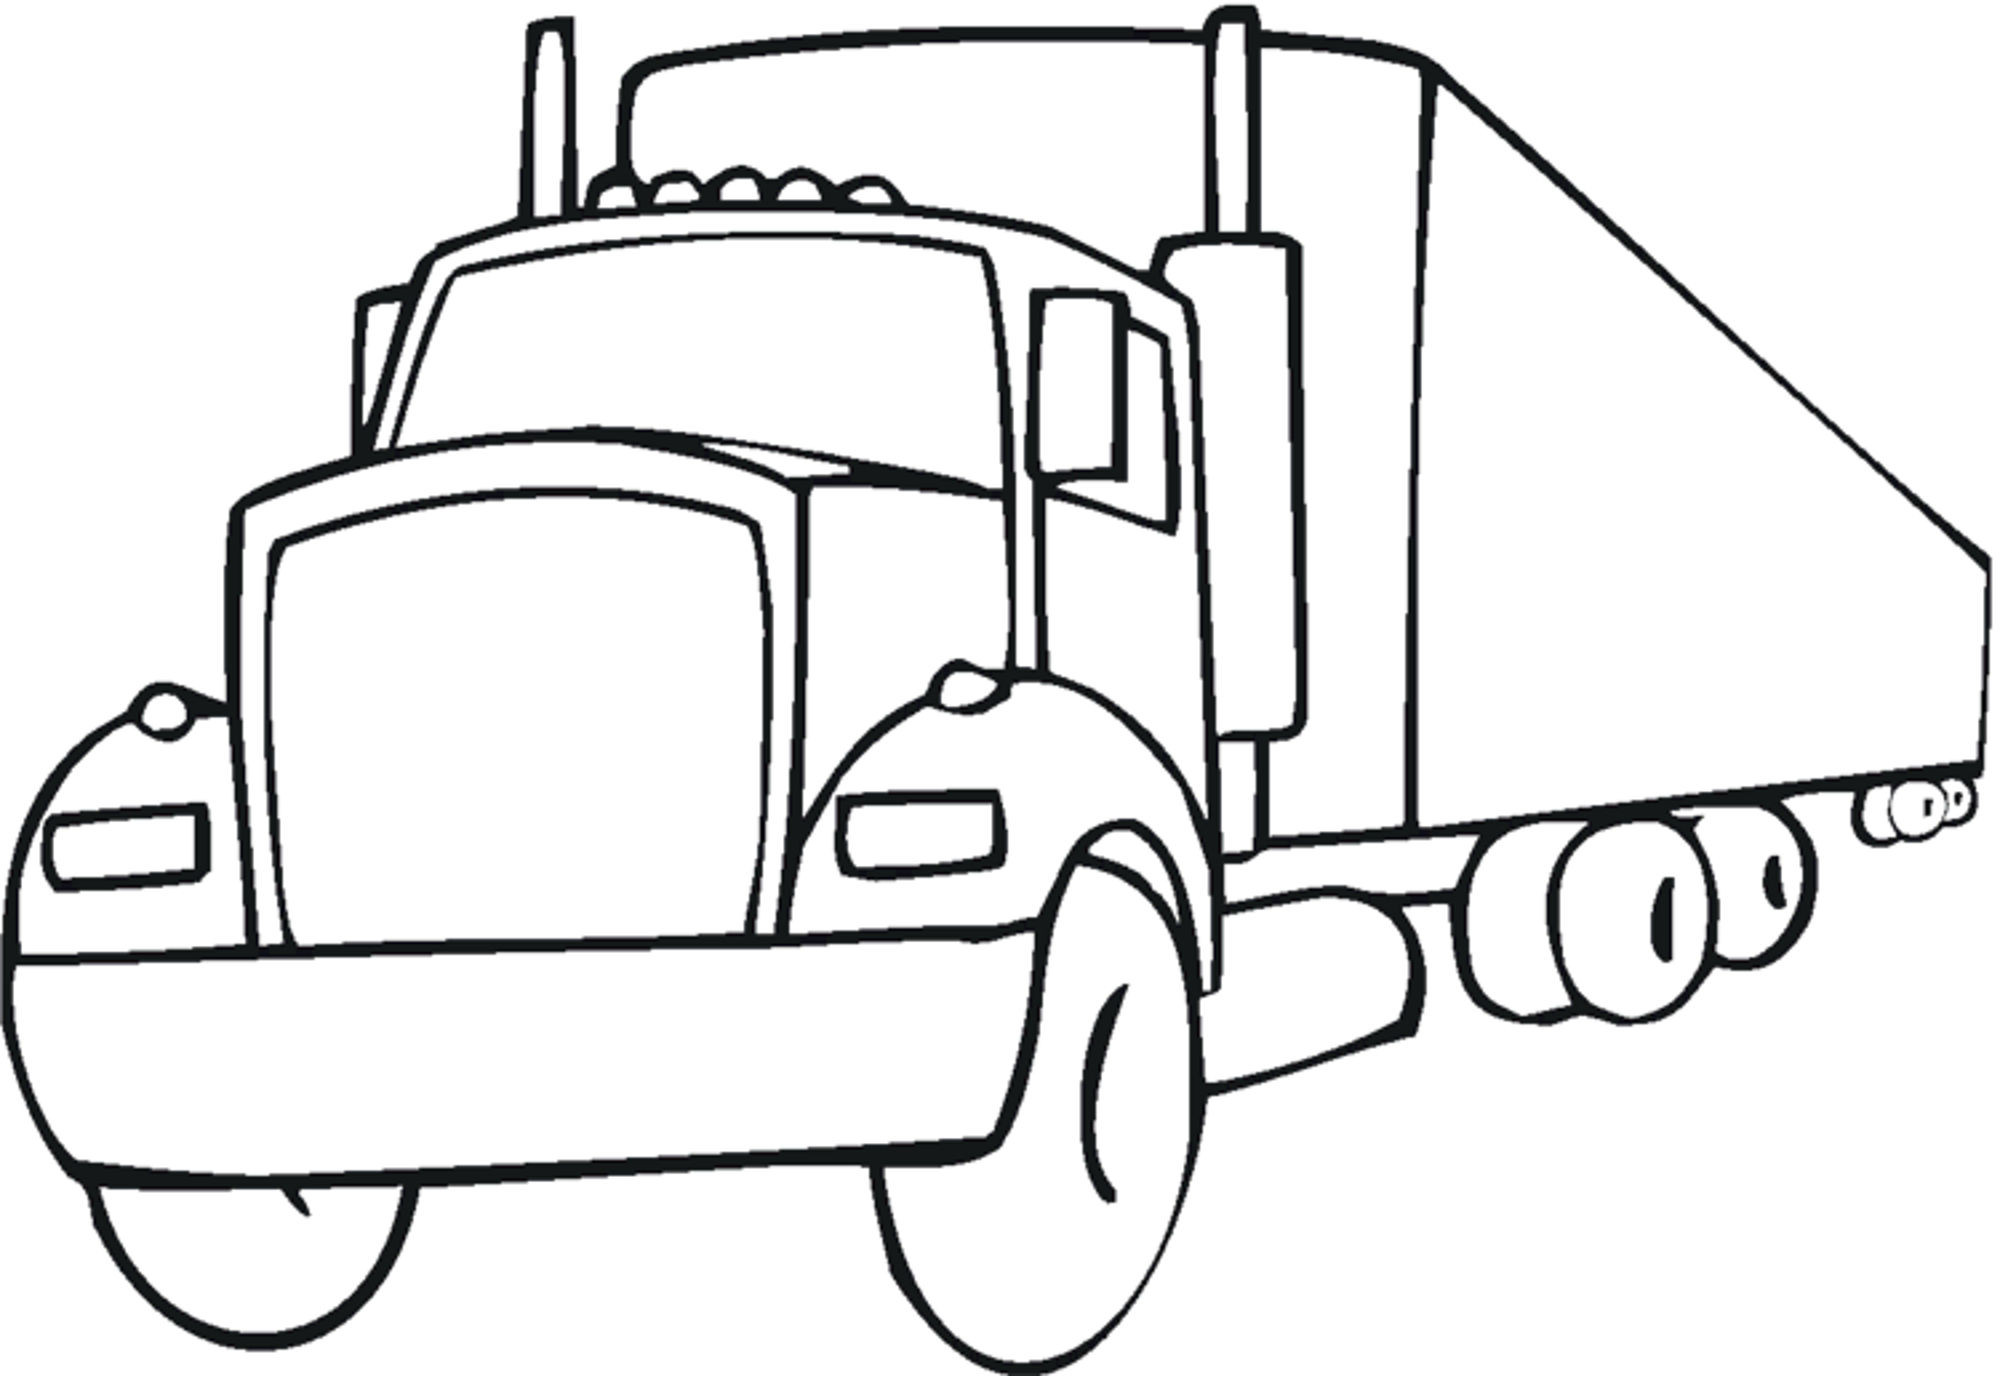 Trucks Coloring Pages For Kids  Print & Download Educational Fire Truck Coloring Pages